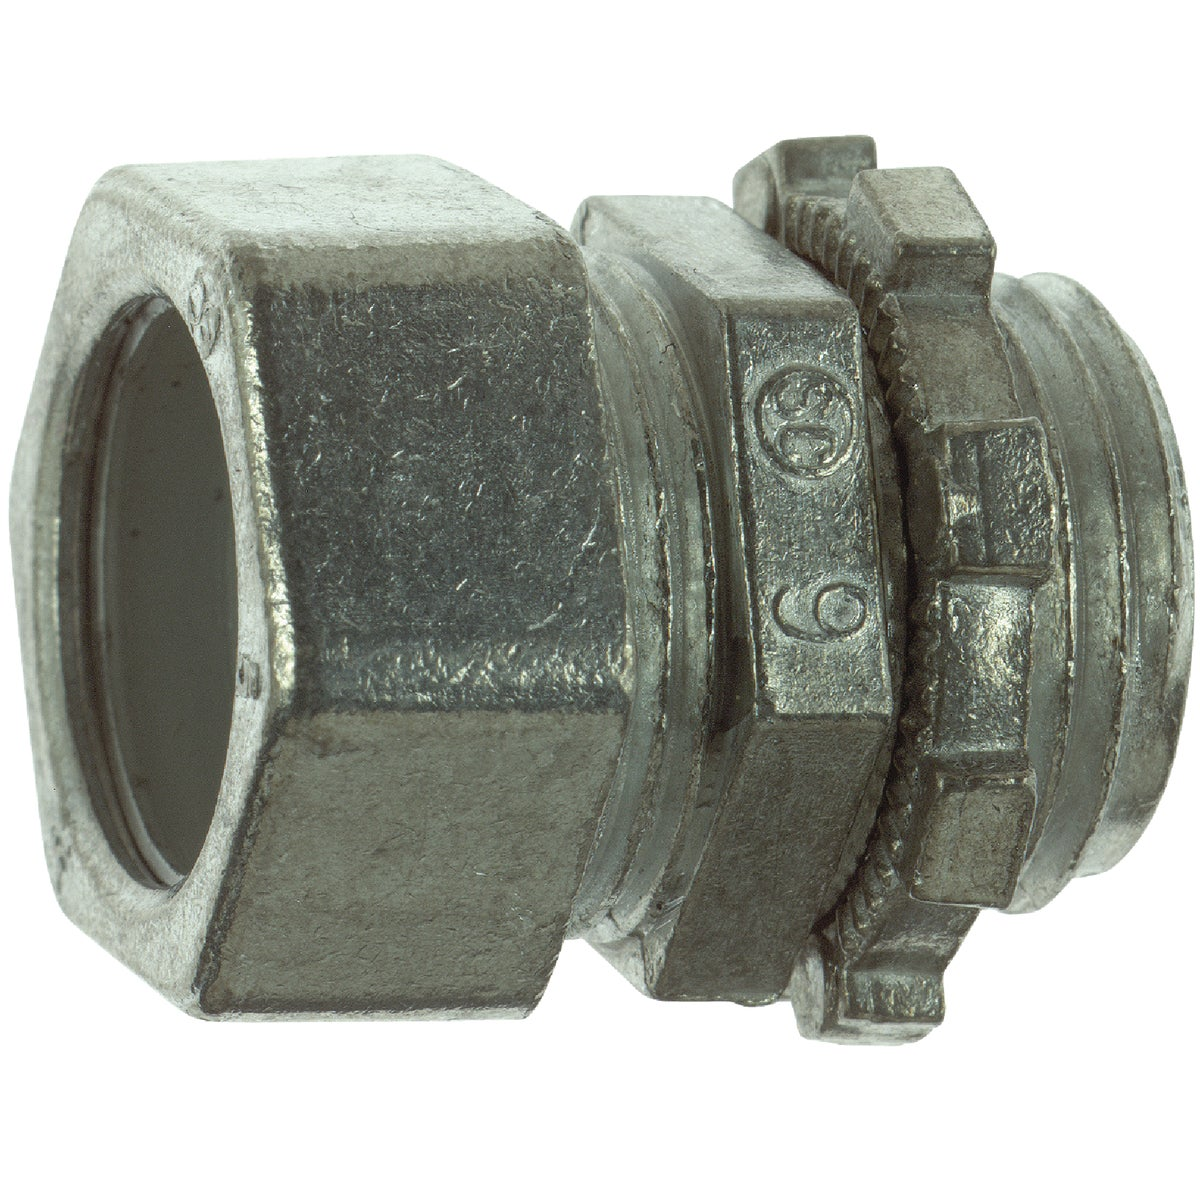 "5PC 3/4"" EMT CONNECTOR - TC212SC5 by Thomas & Betts"